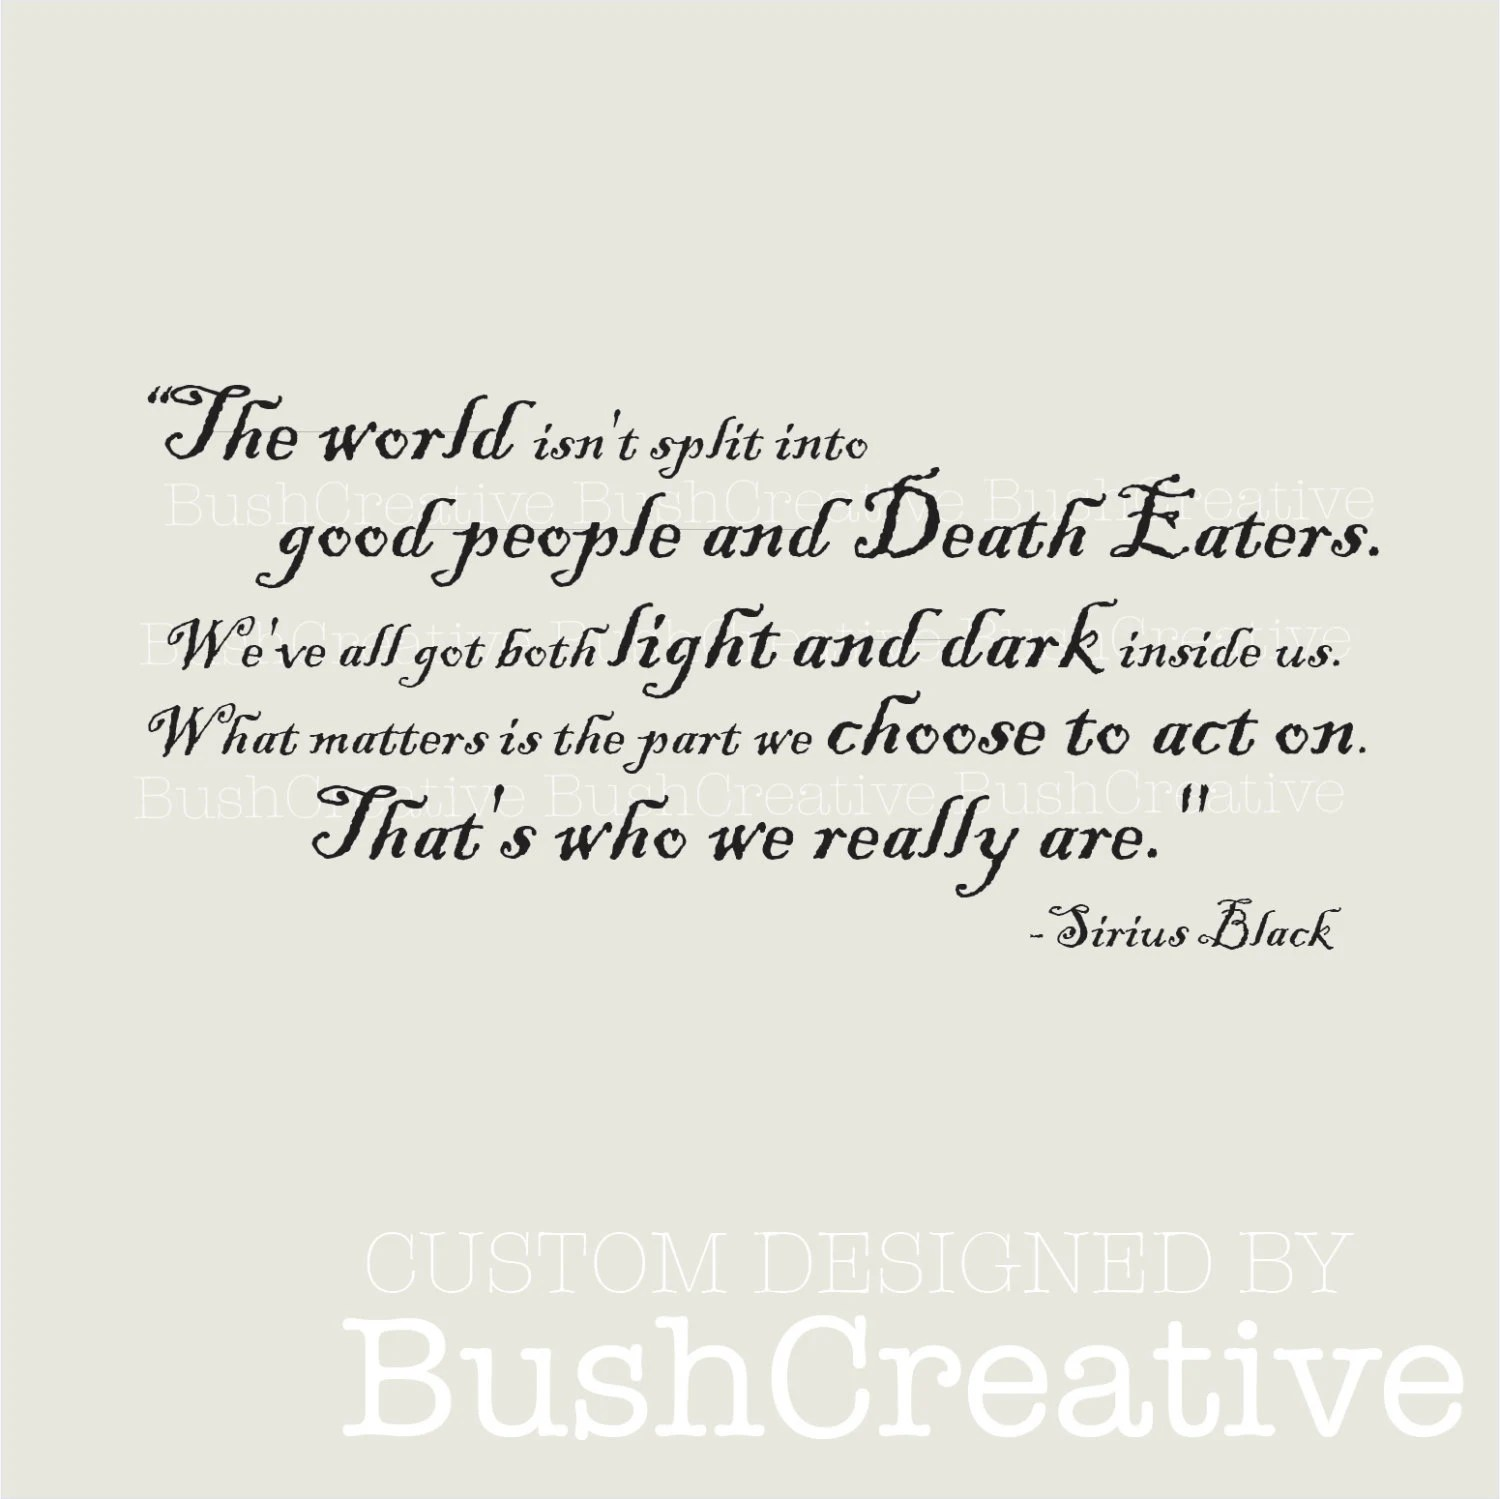 Wall Decal-Harry Potter Quote by Sirius Black by bushcreative